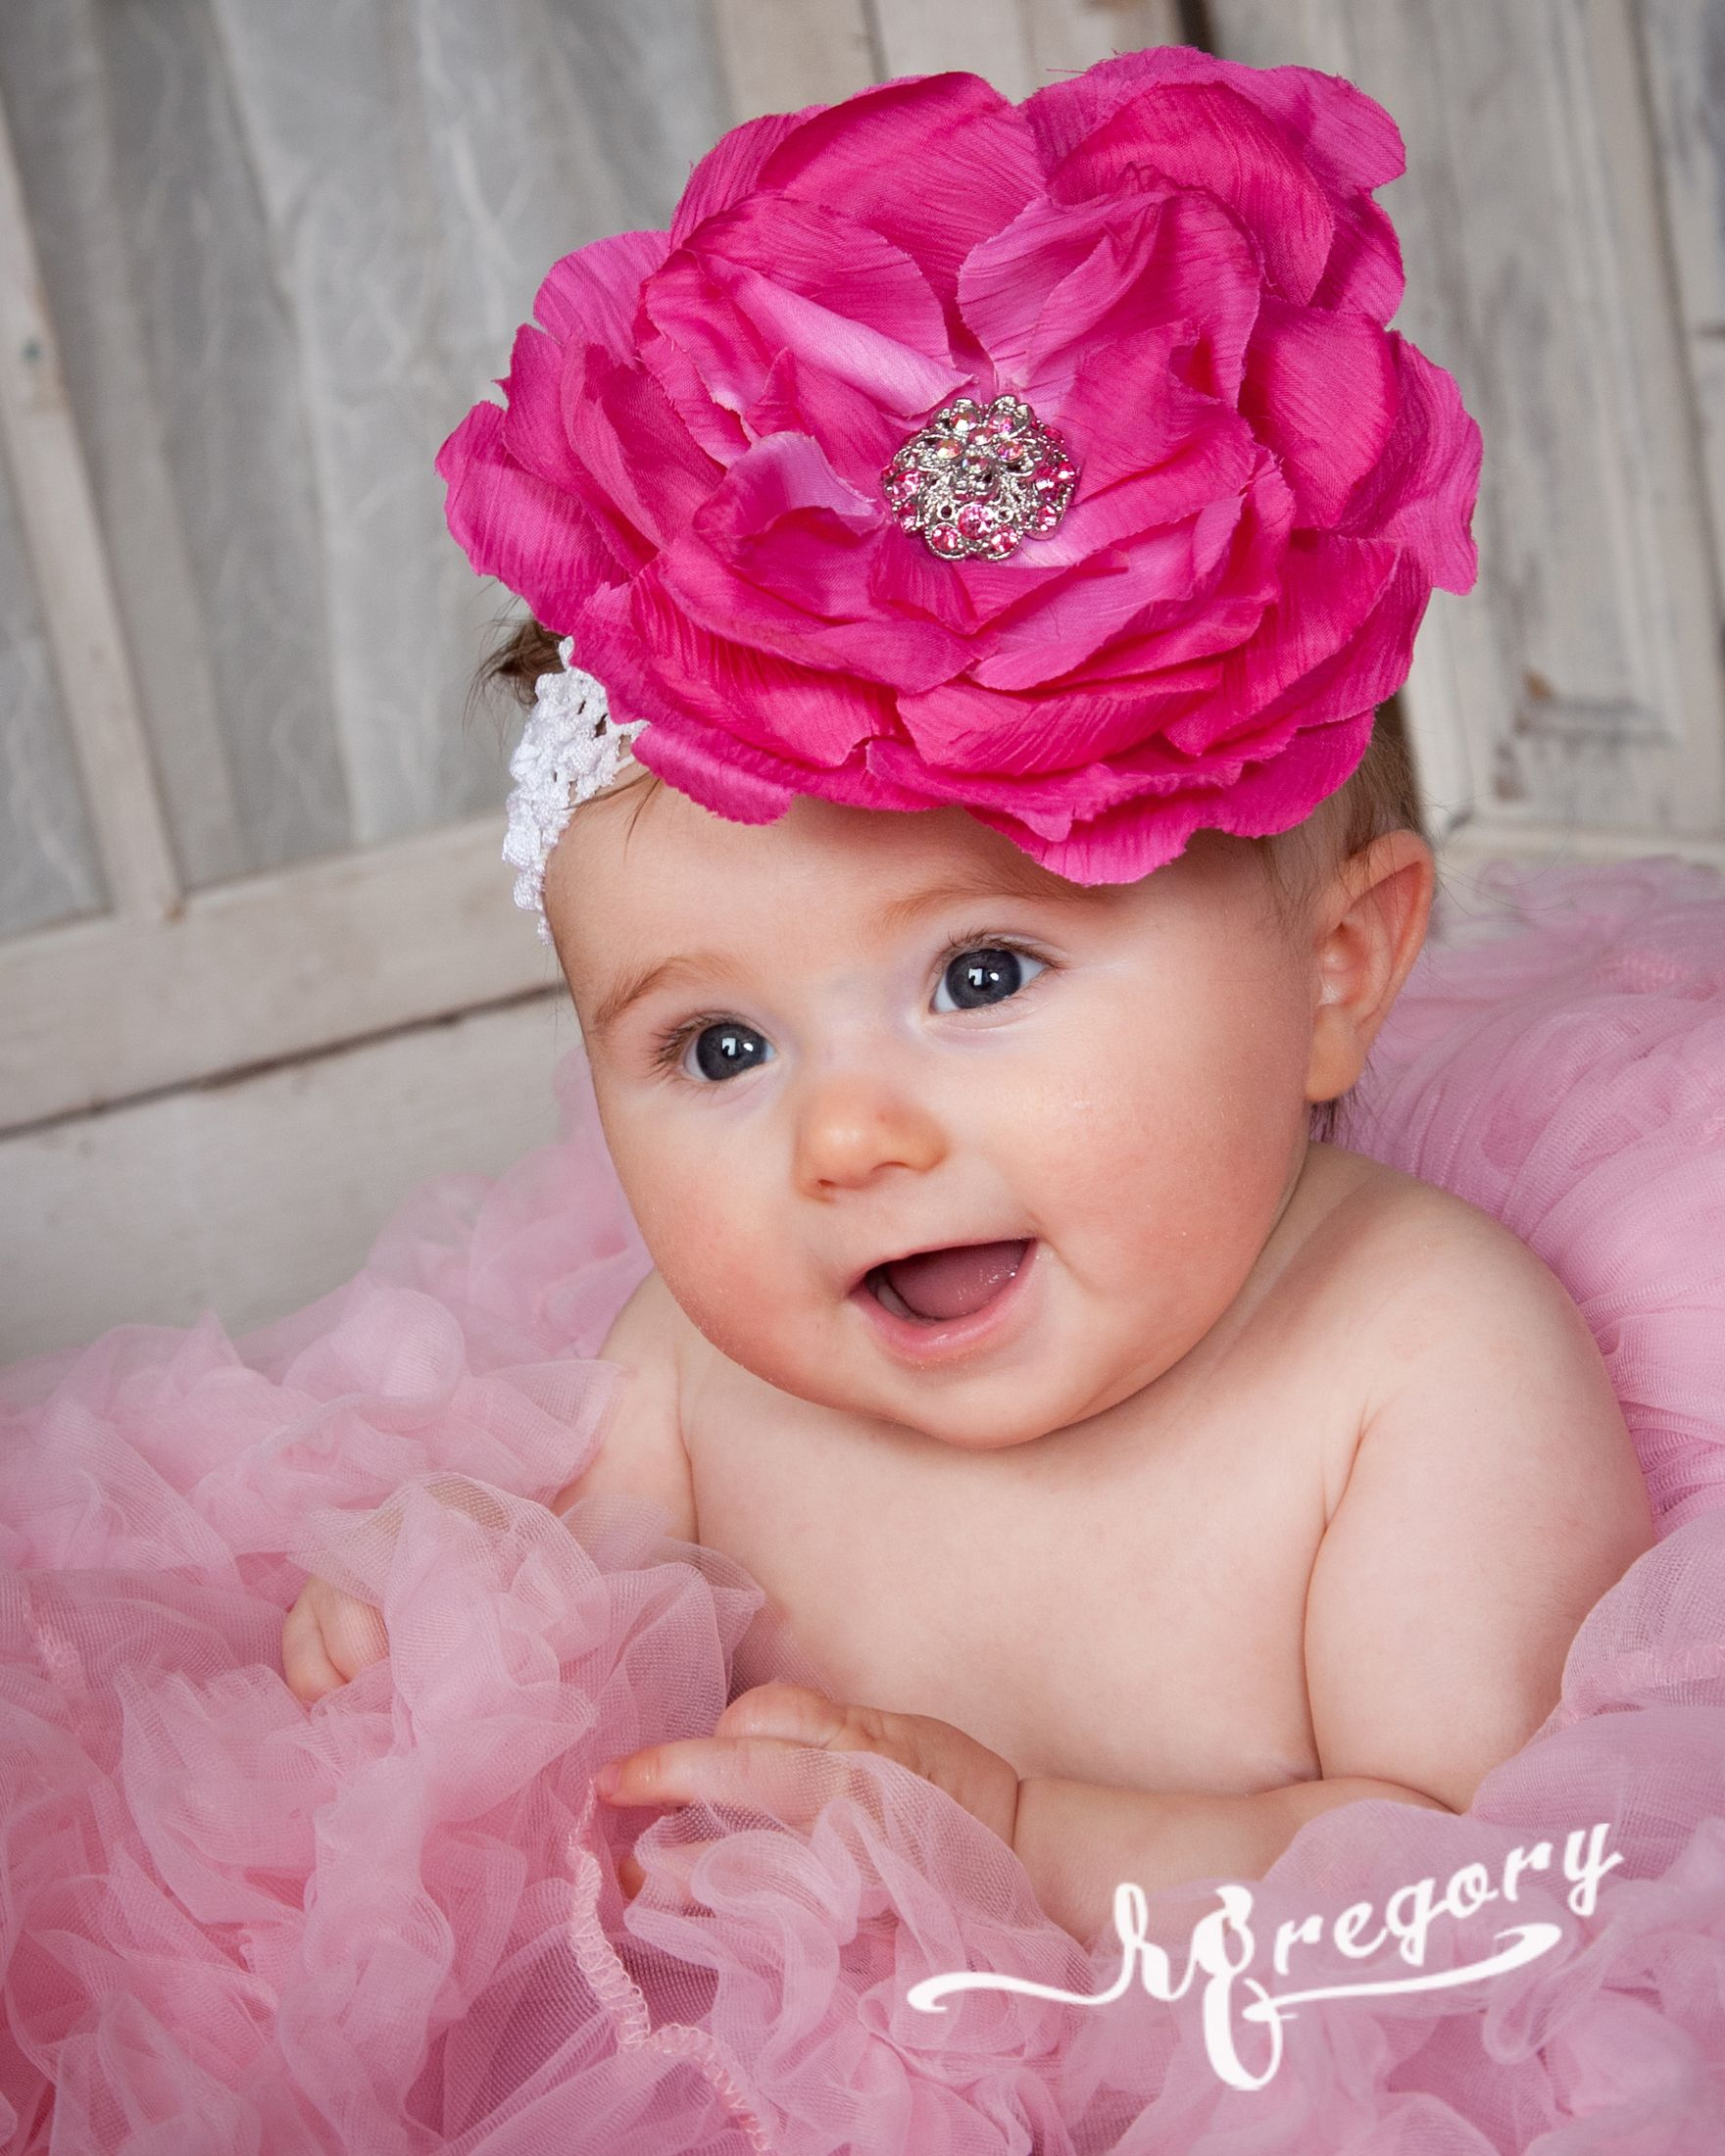 Kellam baby child photography girl in pink